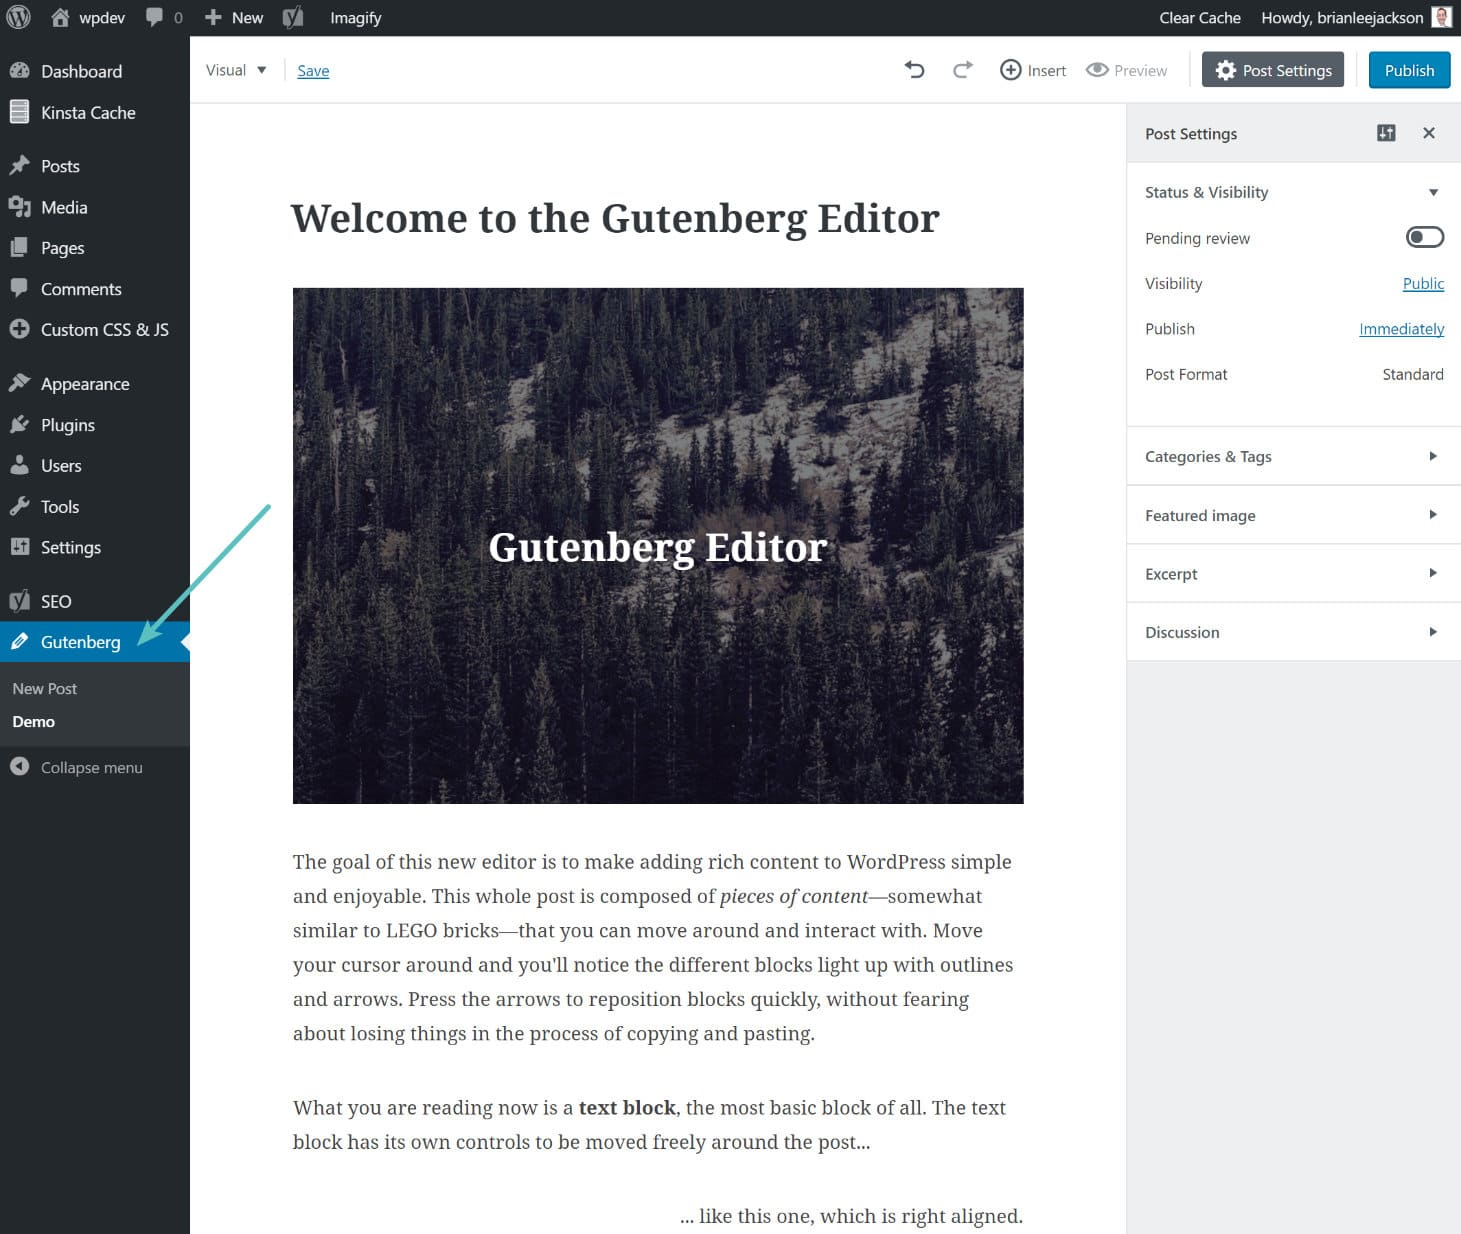 Demo dell'editor Gutenberg